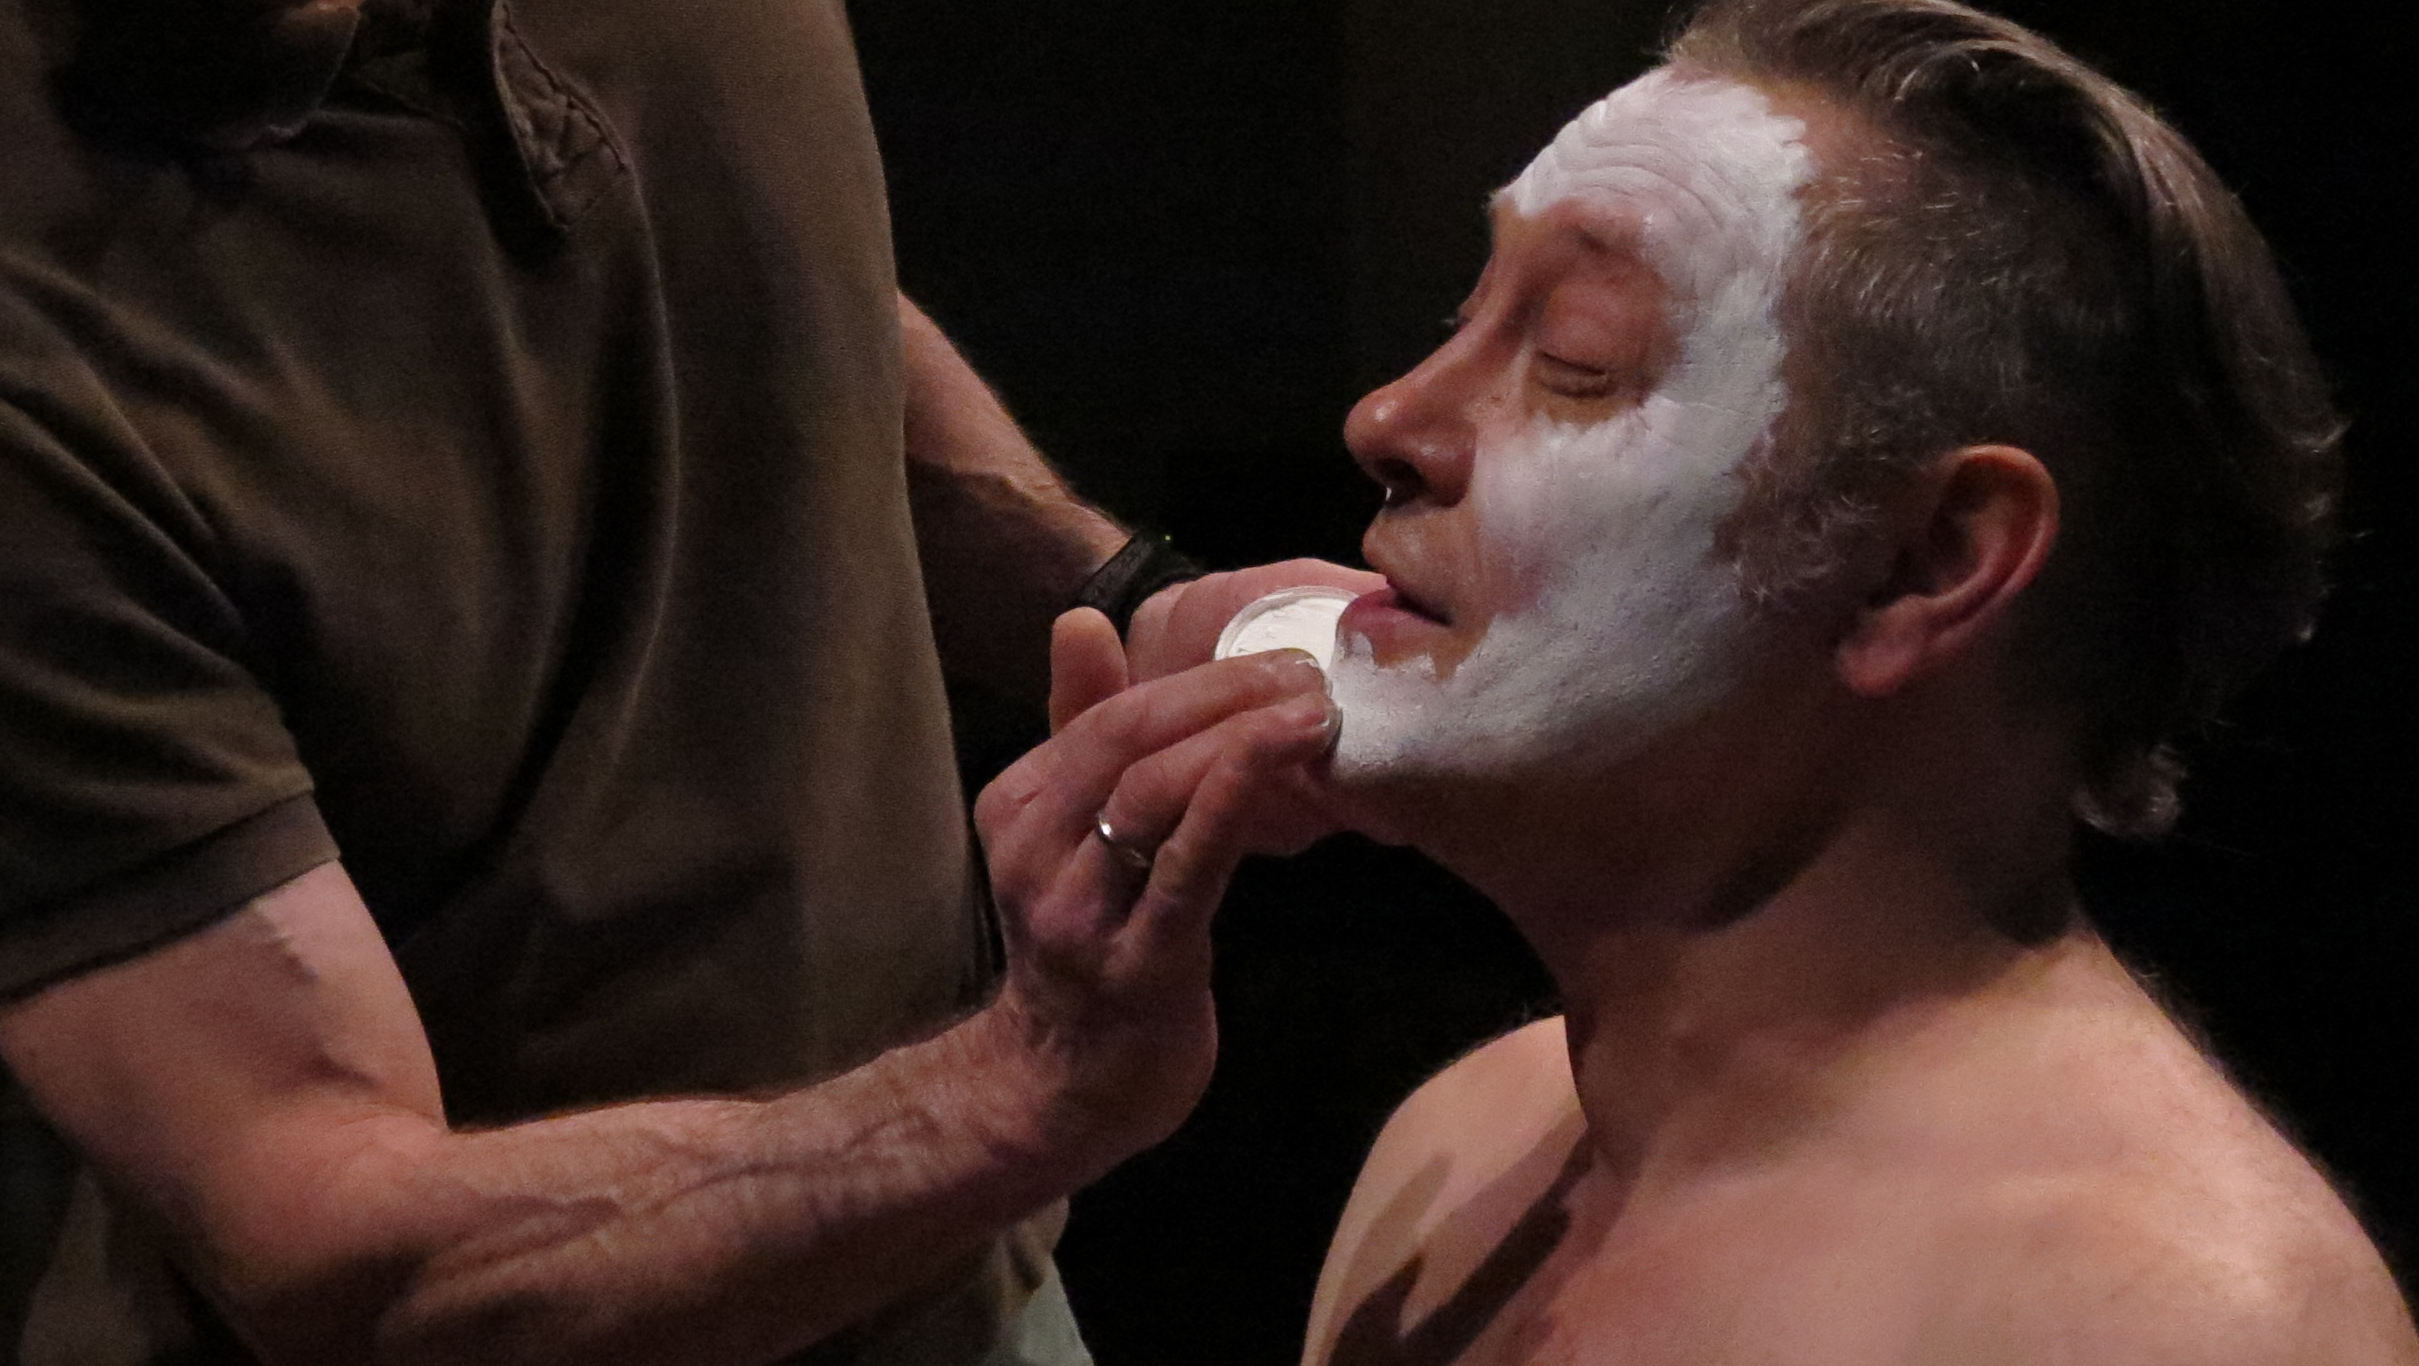 Ben Watts in makeup, Faust 3: The Turd Coming